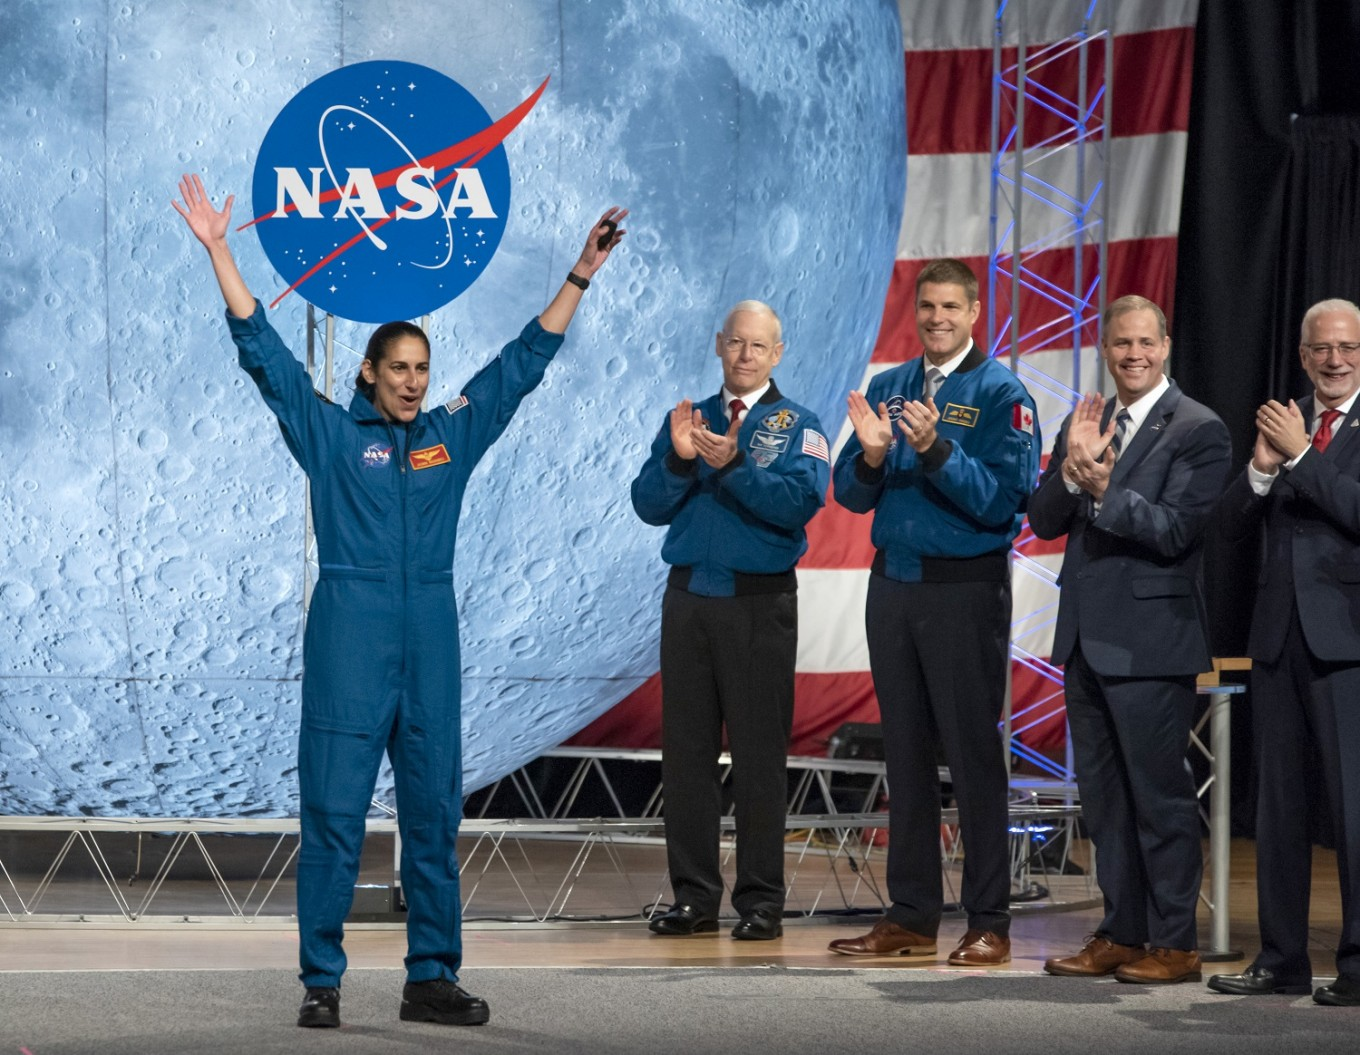 'Space unites us': First Iranian-American astronaut reaches for stars